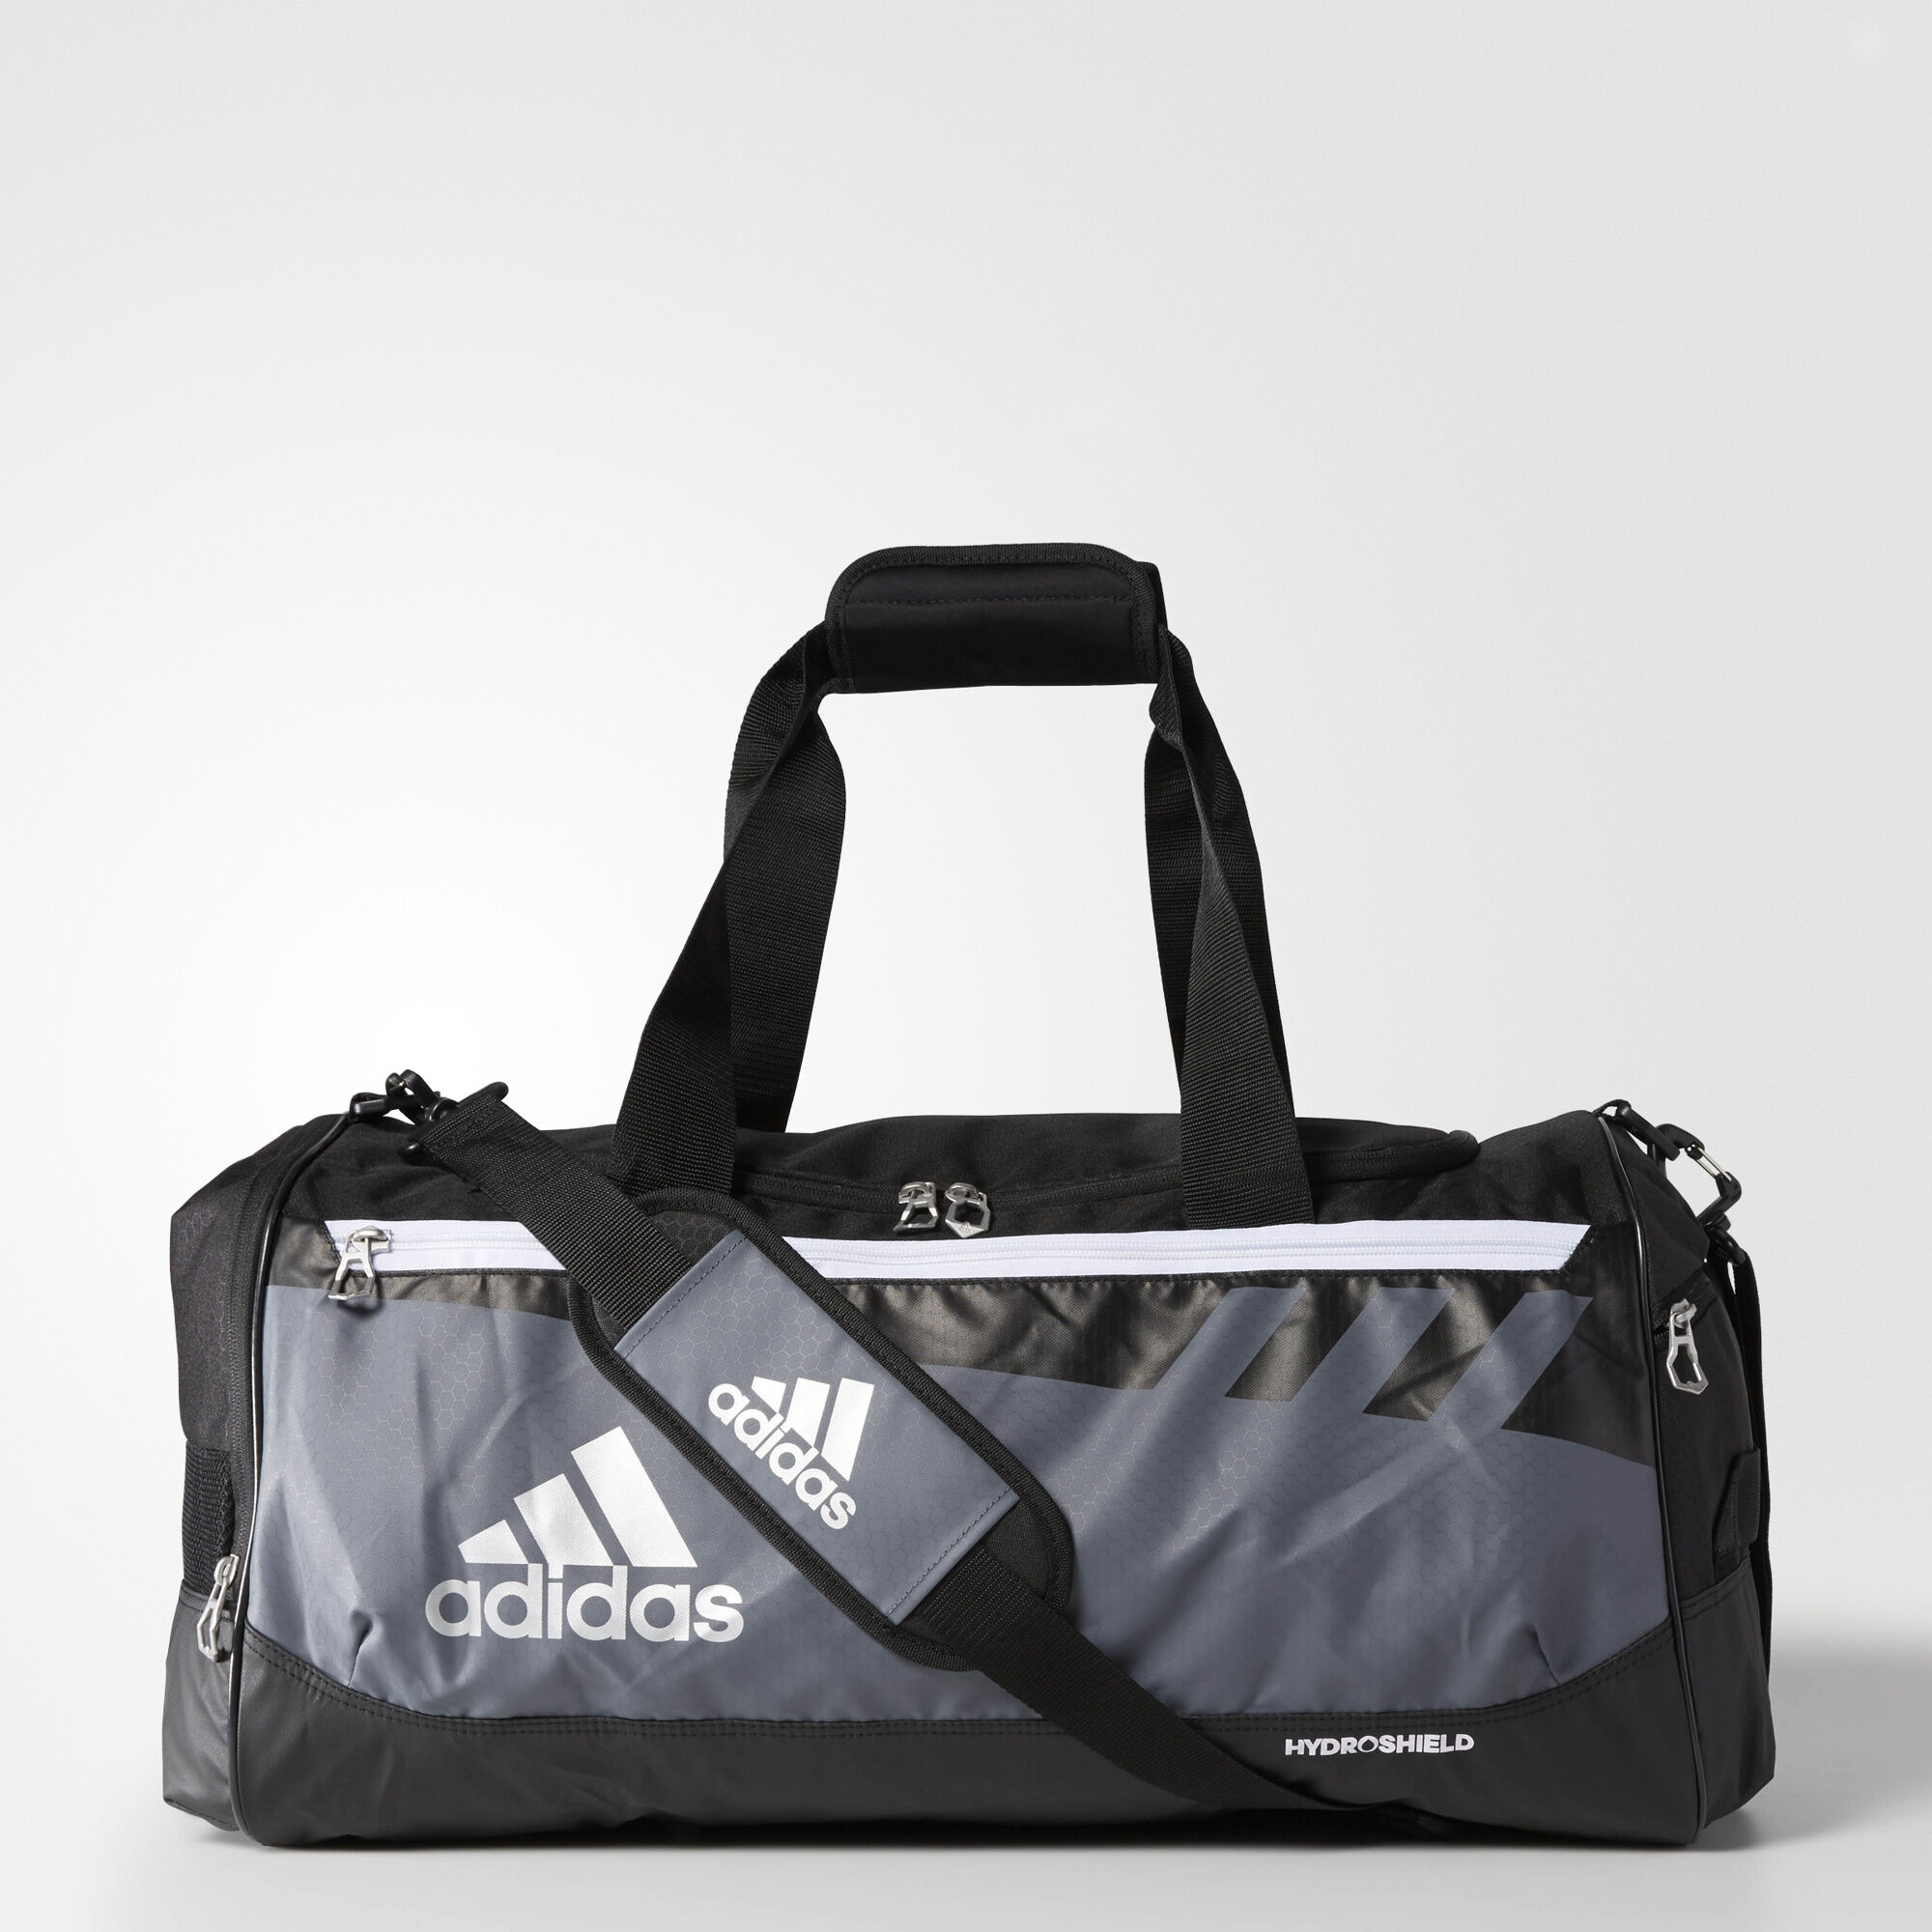 faaa7bc45ceb adidas duffle bag medium cheap   OFF59% The Largest Catalog Discounts